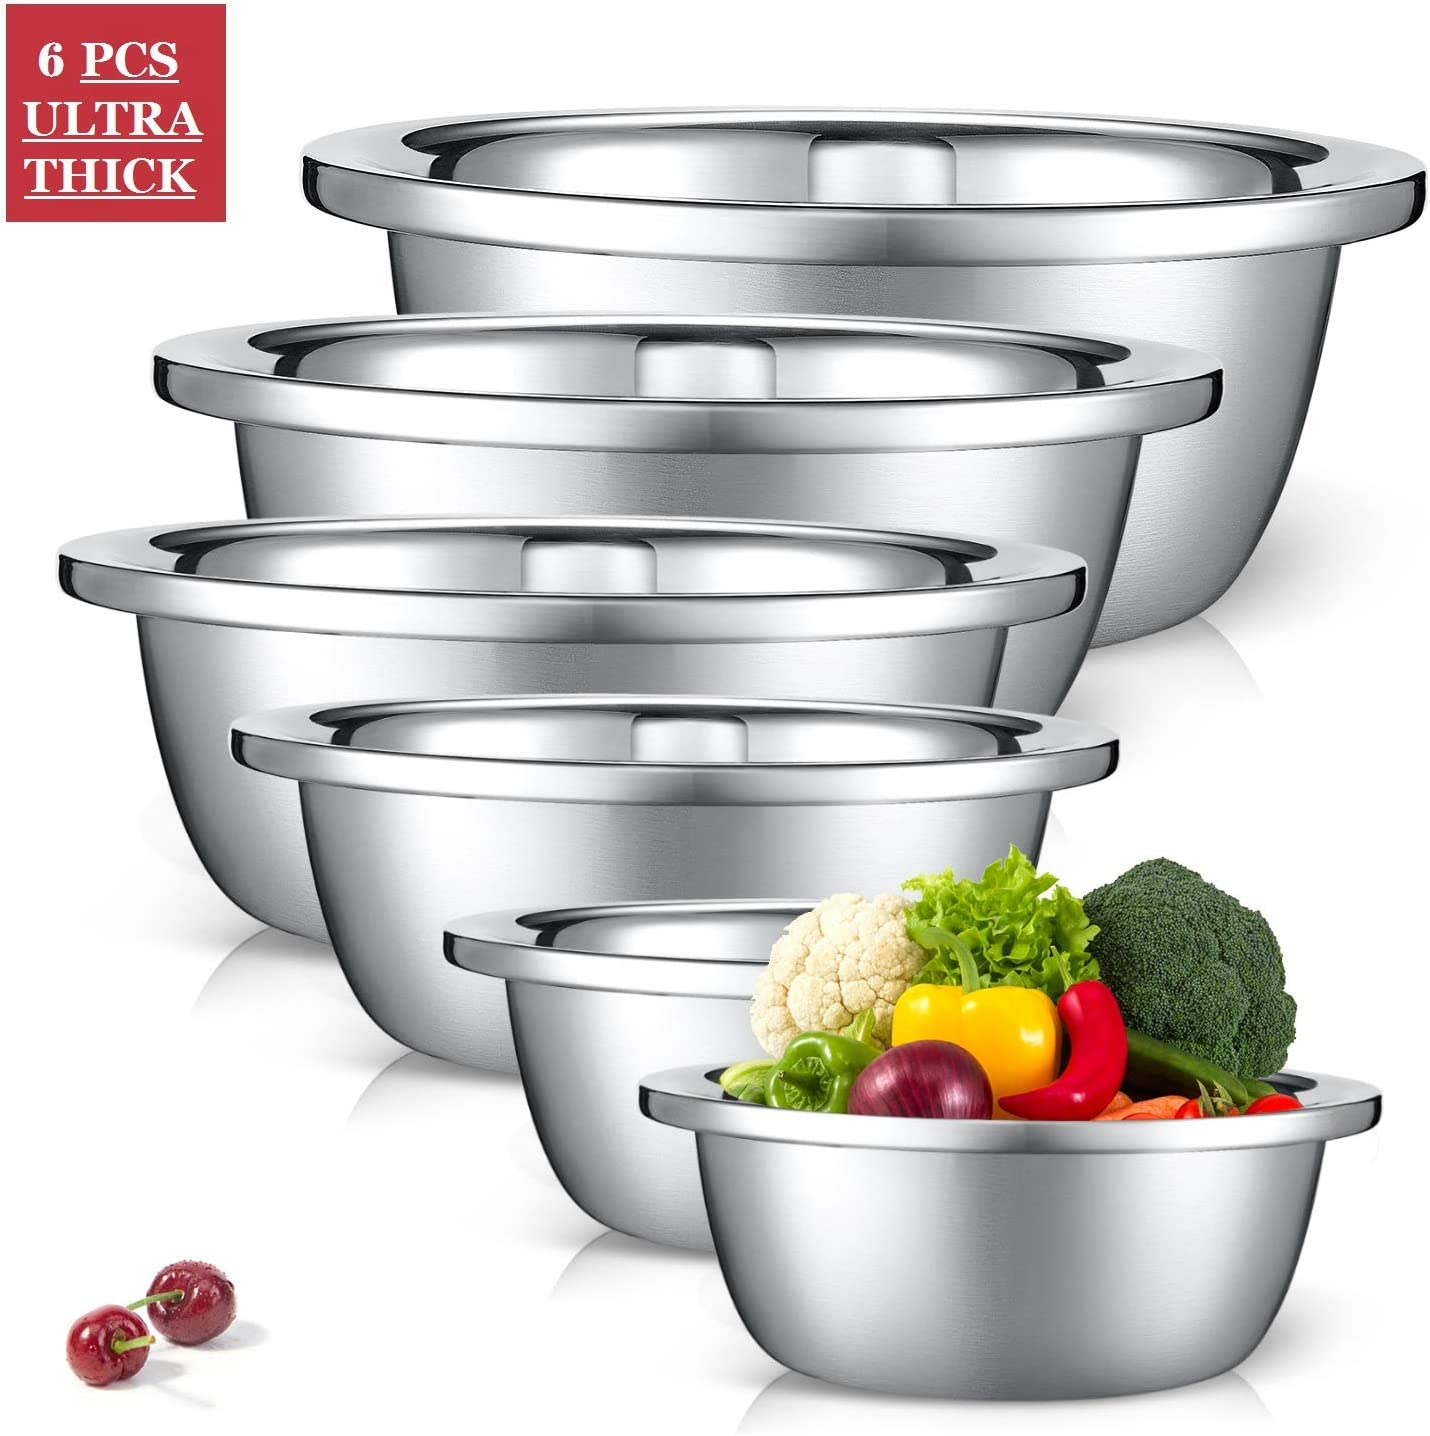 JPFS Stainless Steels Mixing Bowls Set of 6 Mirror Polished Mixing Blows Set Included ¾, 2, 3.5, 5, 6, 8 Quart, Nesting Basins Versatile For Cooking, Baking, Prepping &Serving